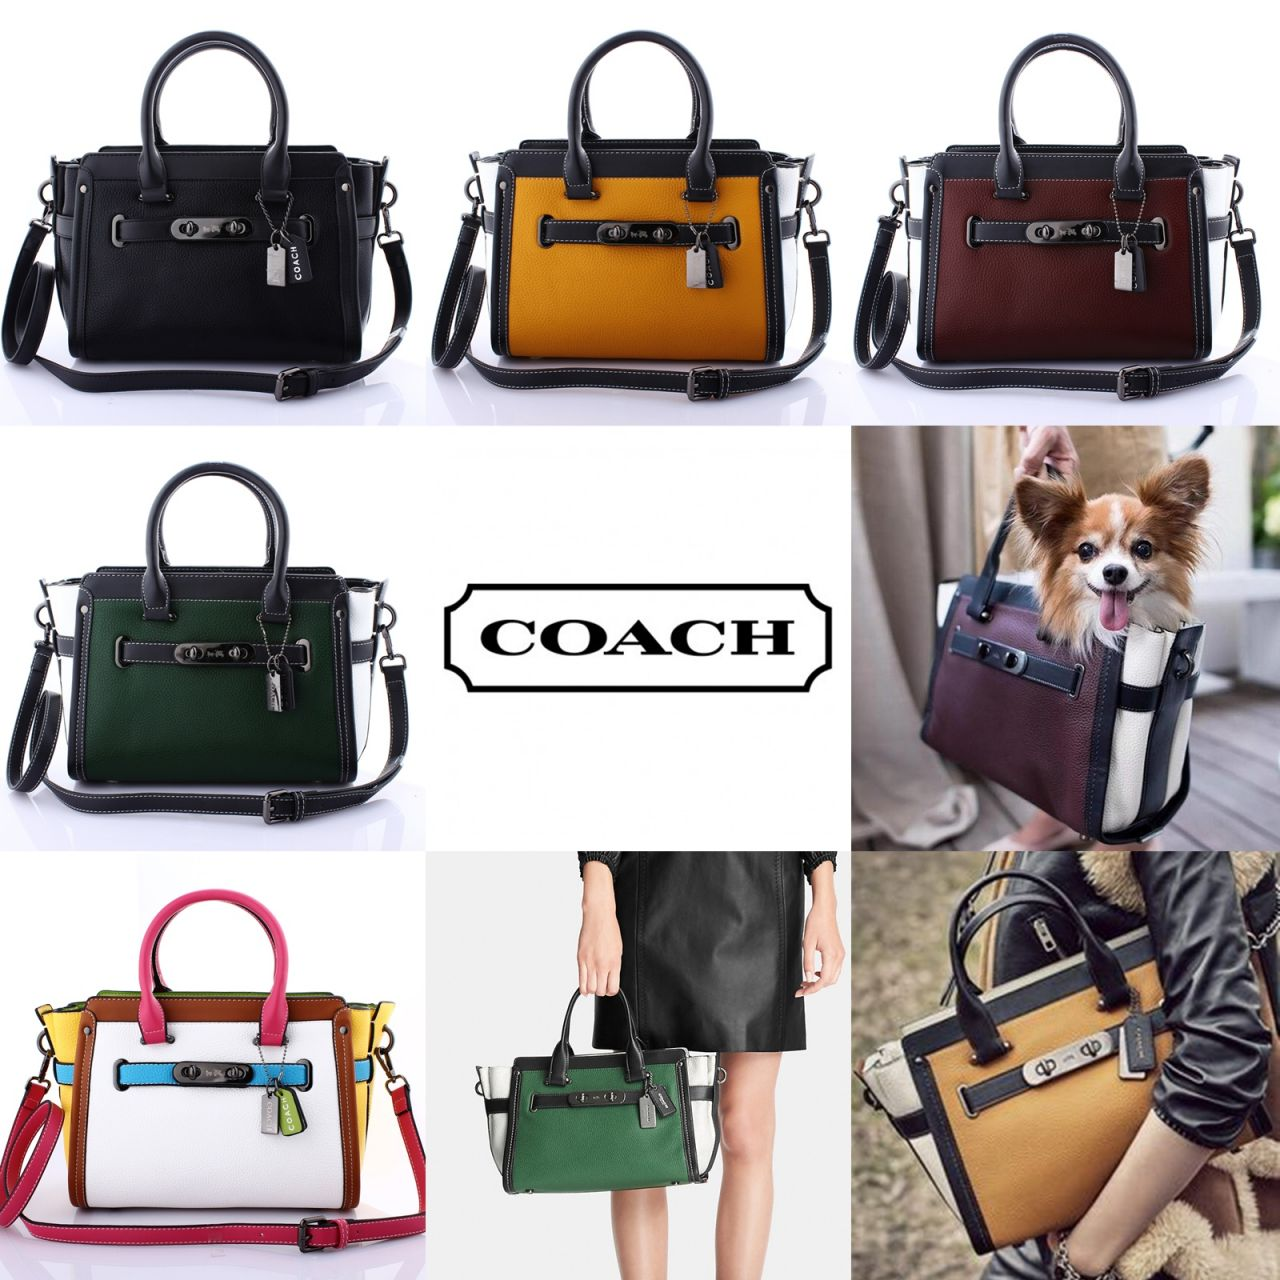 Jual Ready Stock!! COACH Swagger Large  3002-2 - Tas Branded ... 781532b625